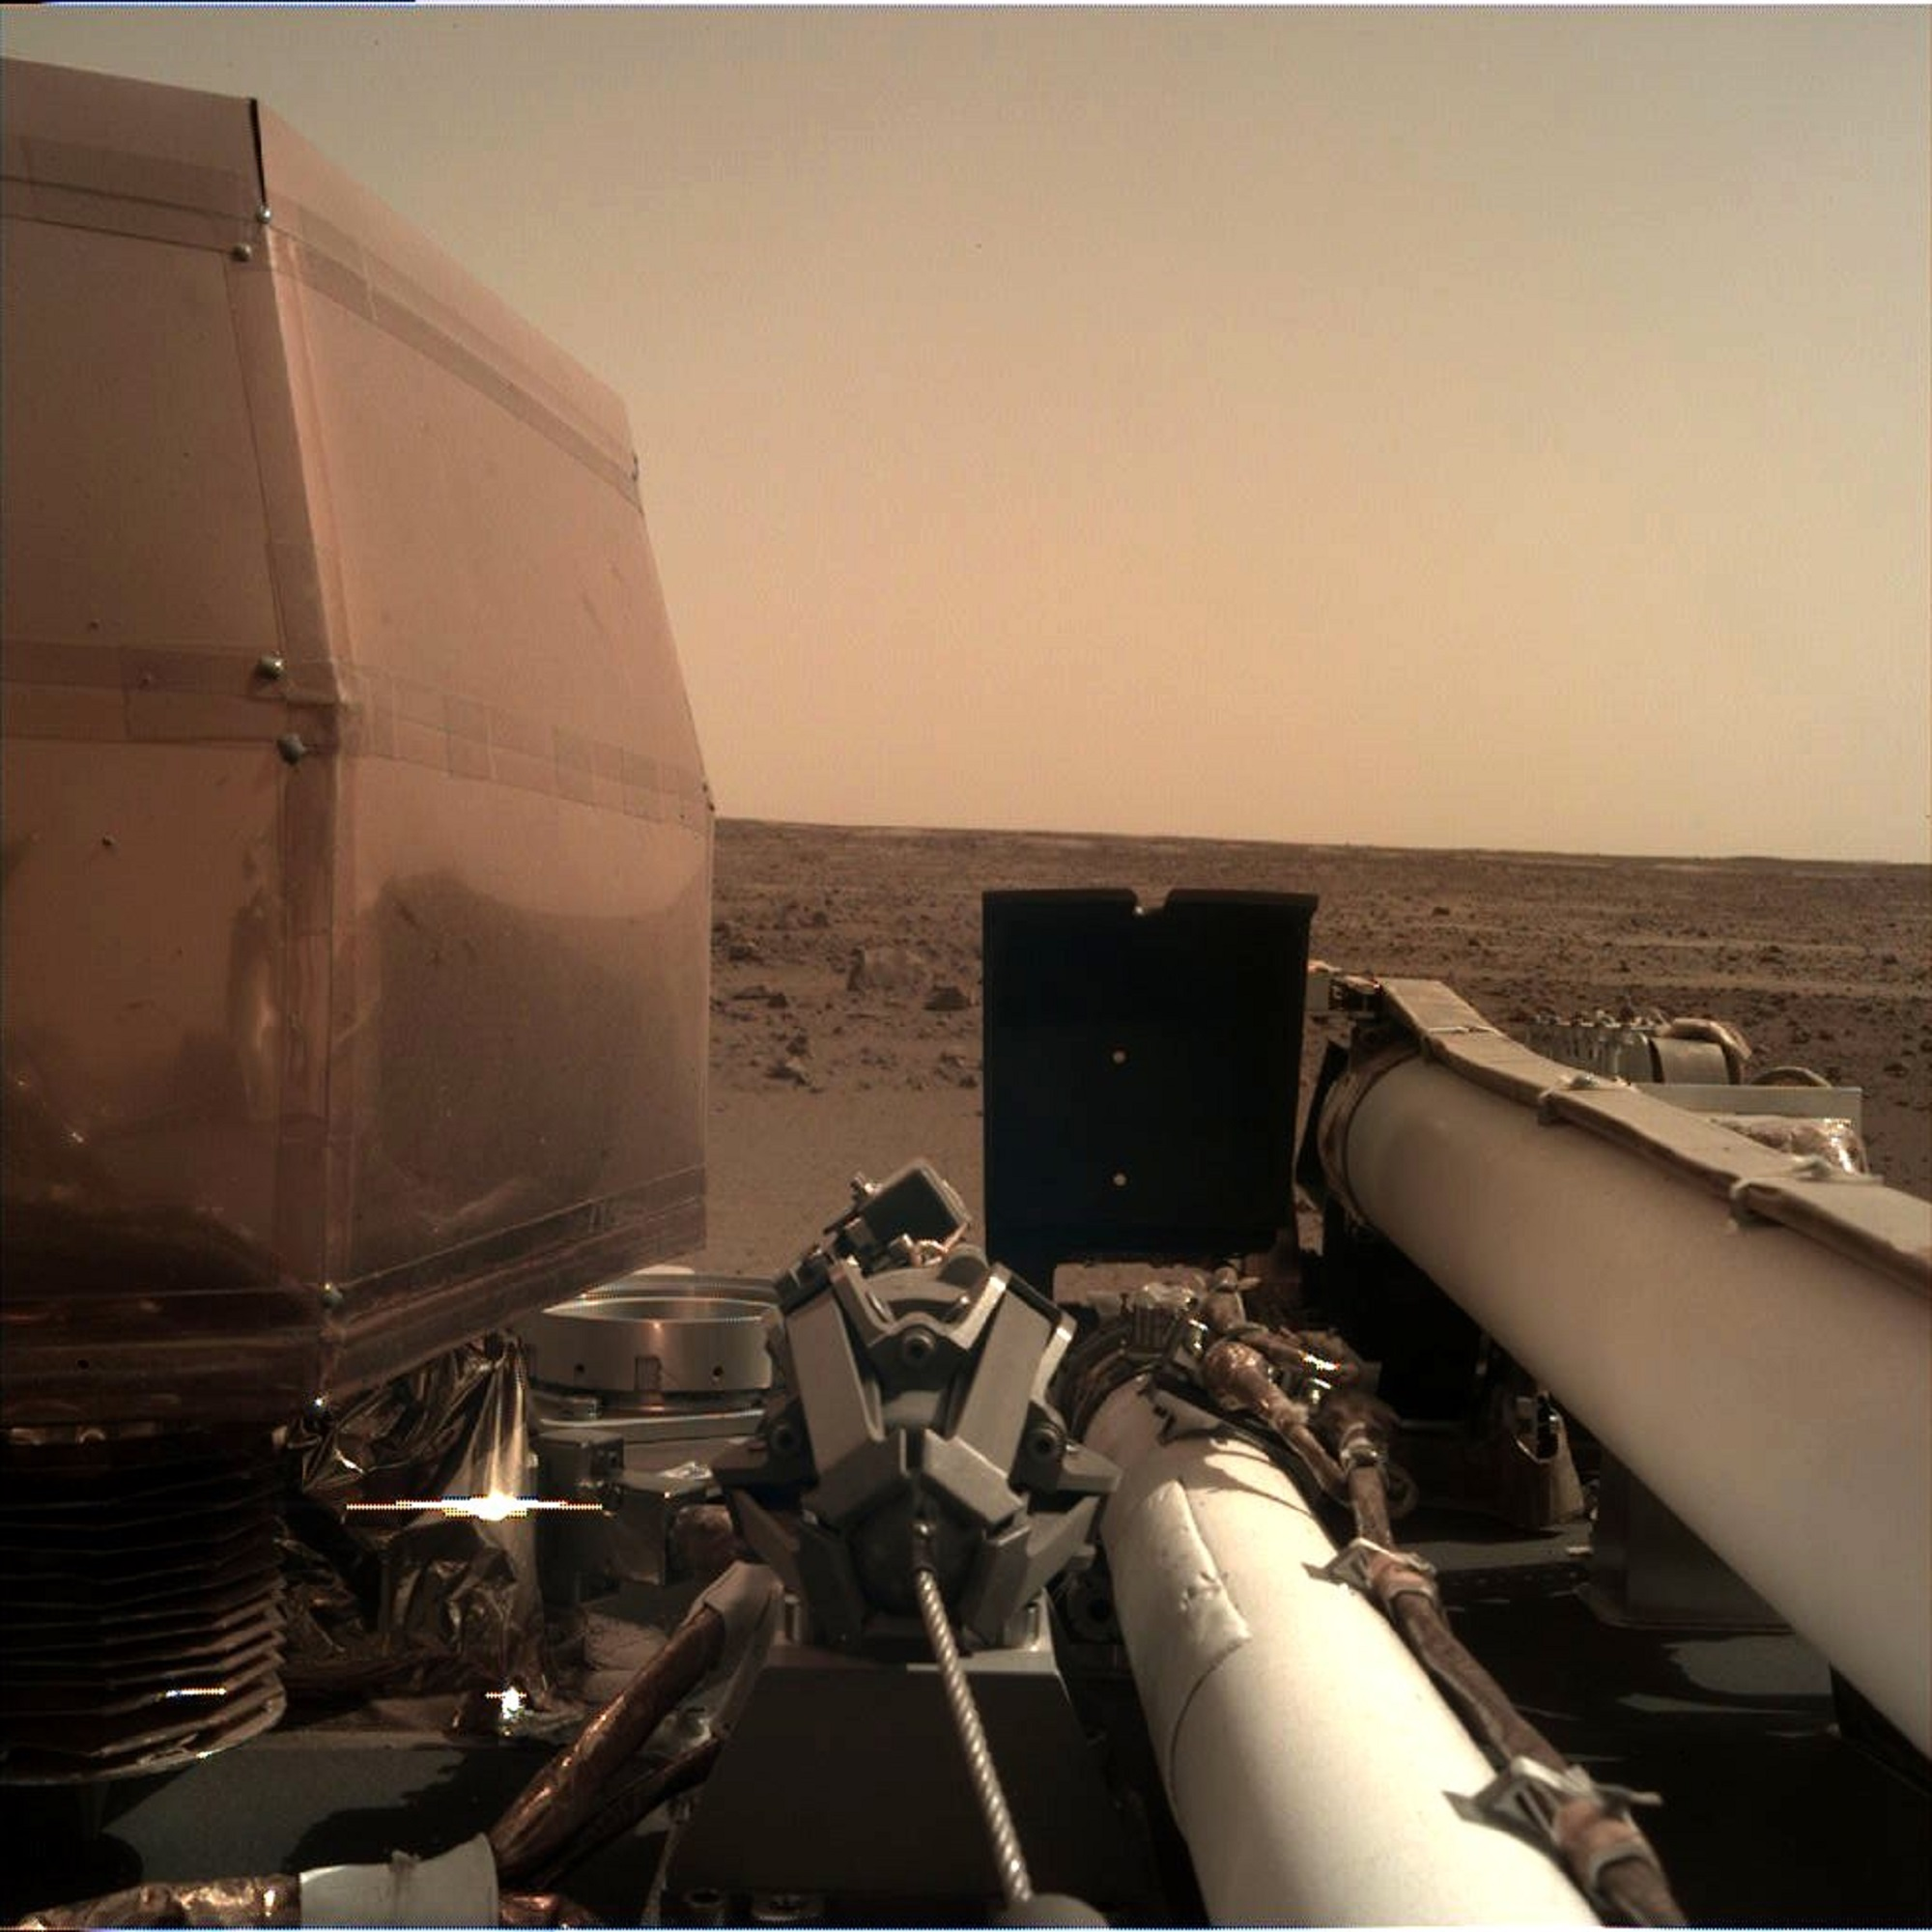 This image of the Martian surface was taken after landing on Tuesday